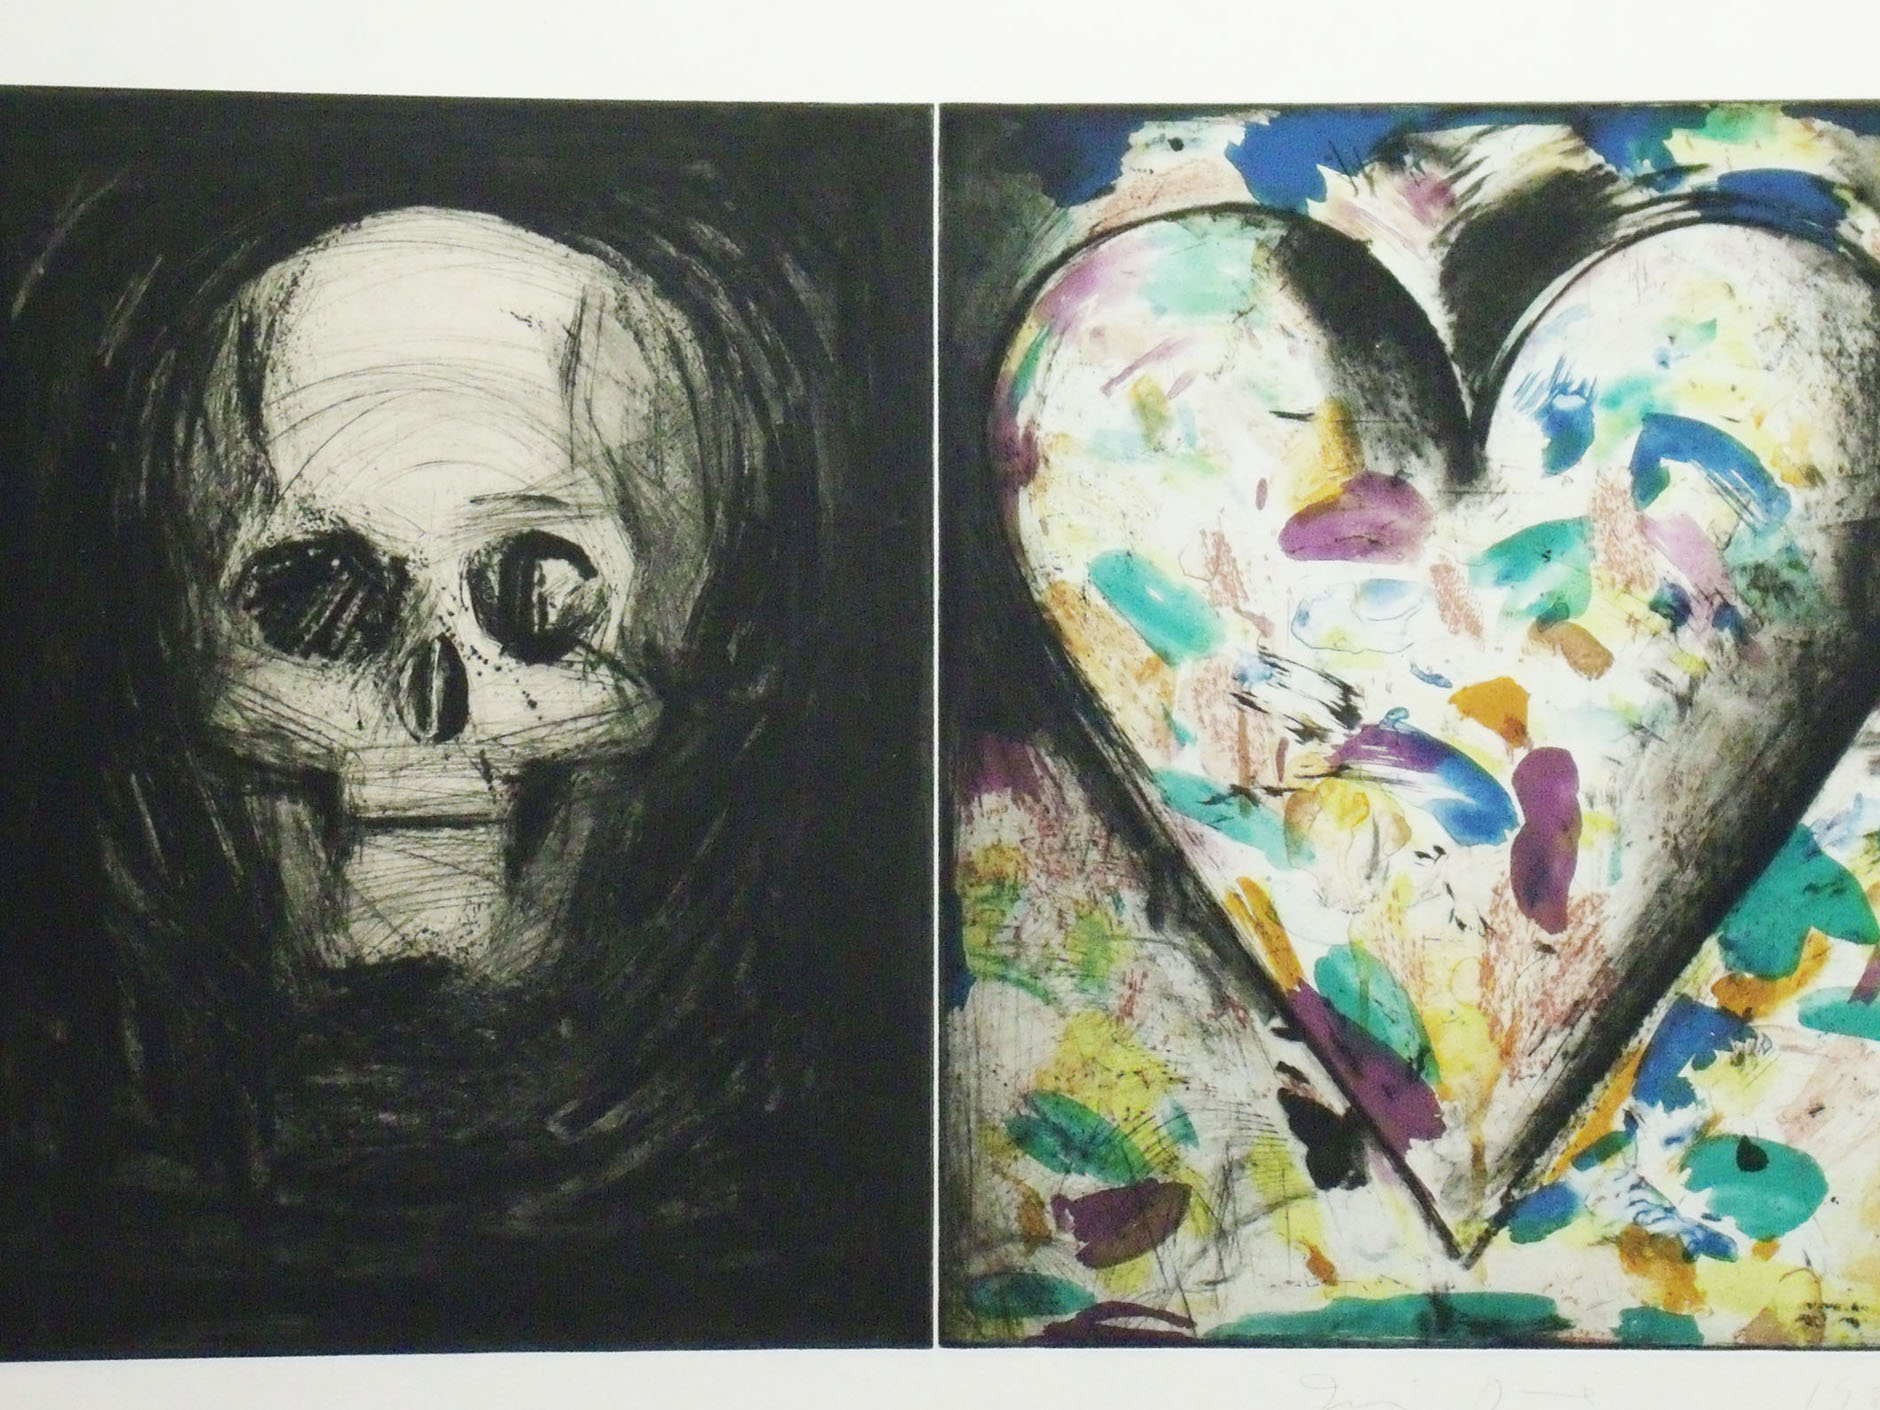 Jim Dine, Sovereign Nights, 1986, 24 x 40, drypoint, color aquatint with chine colle